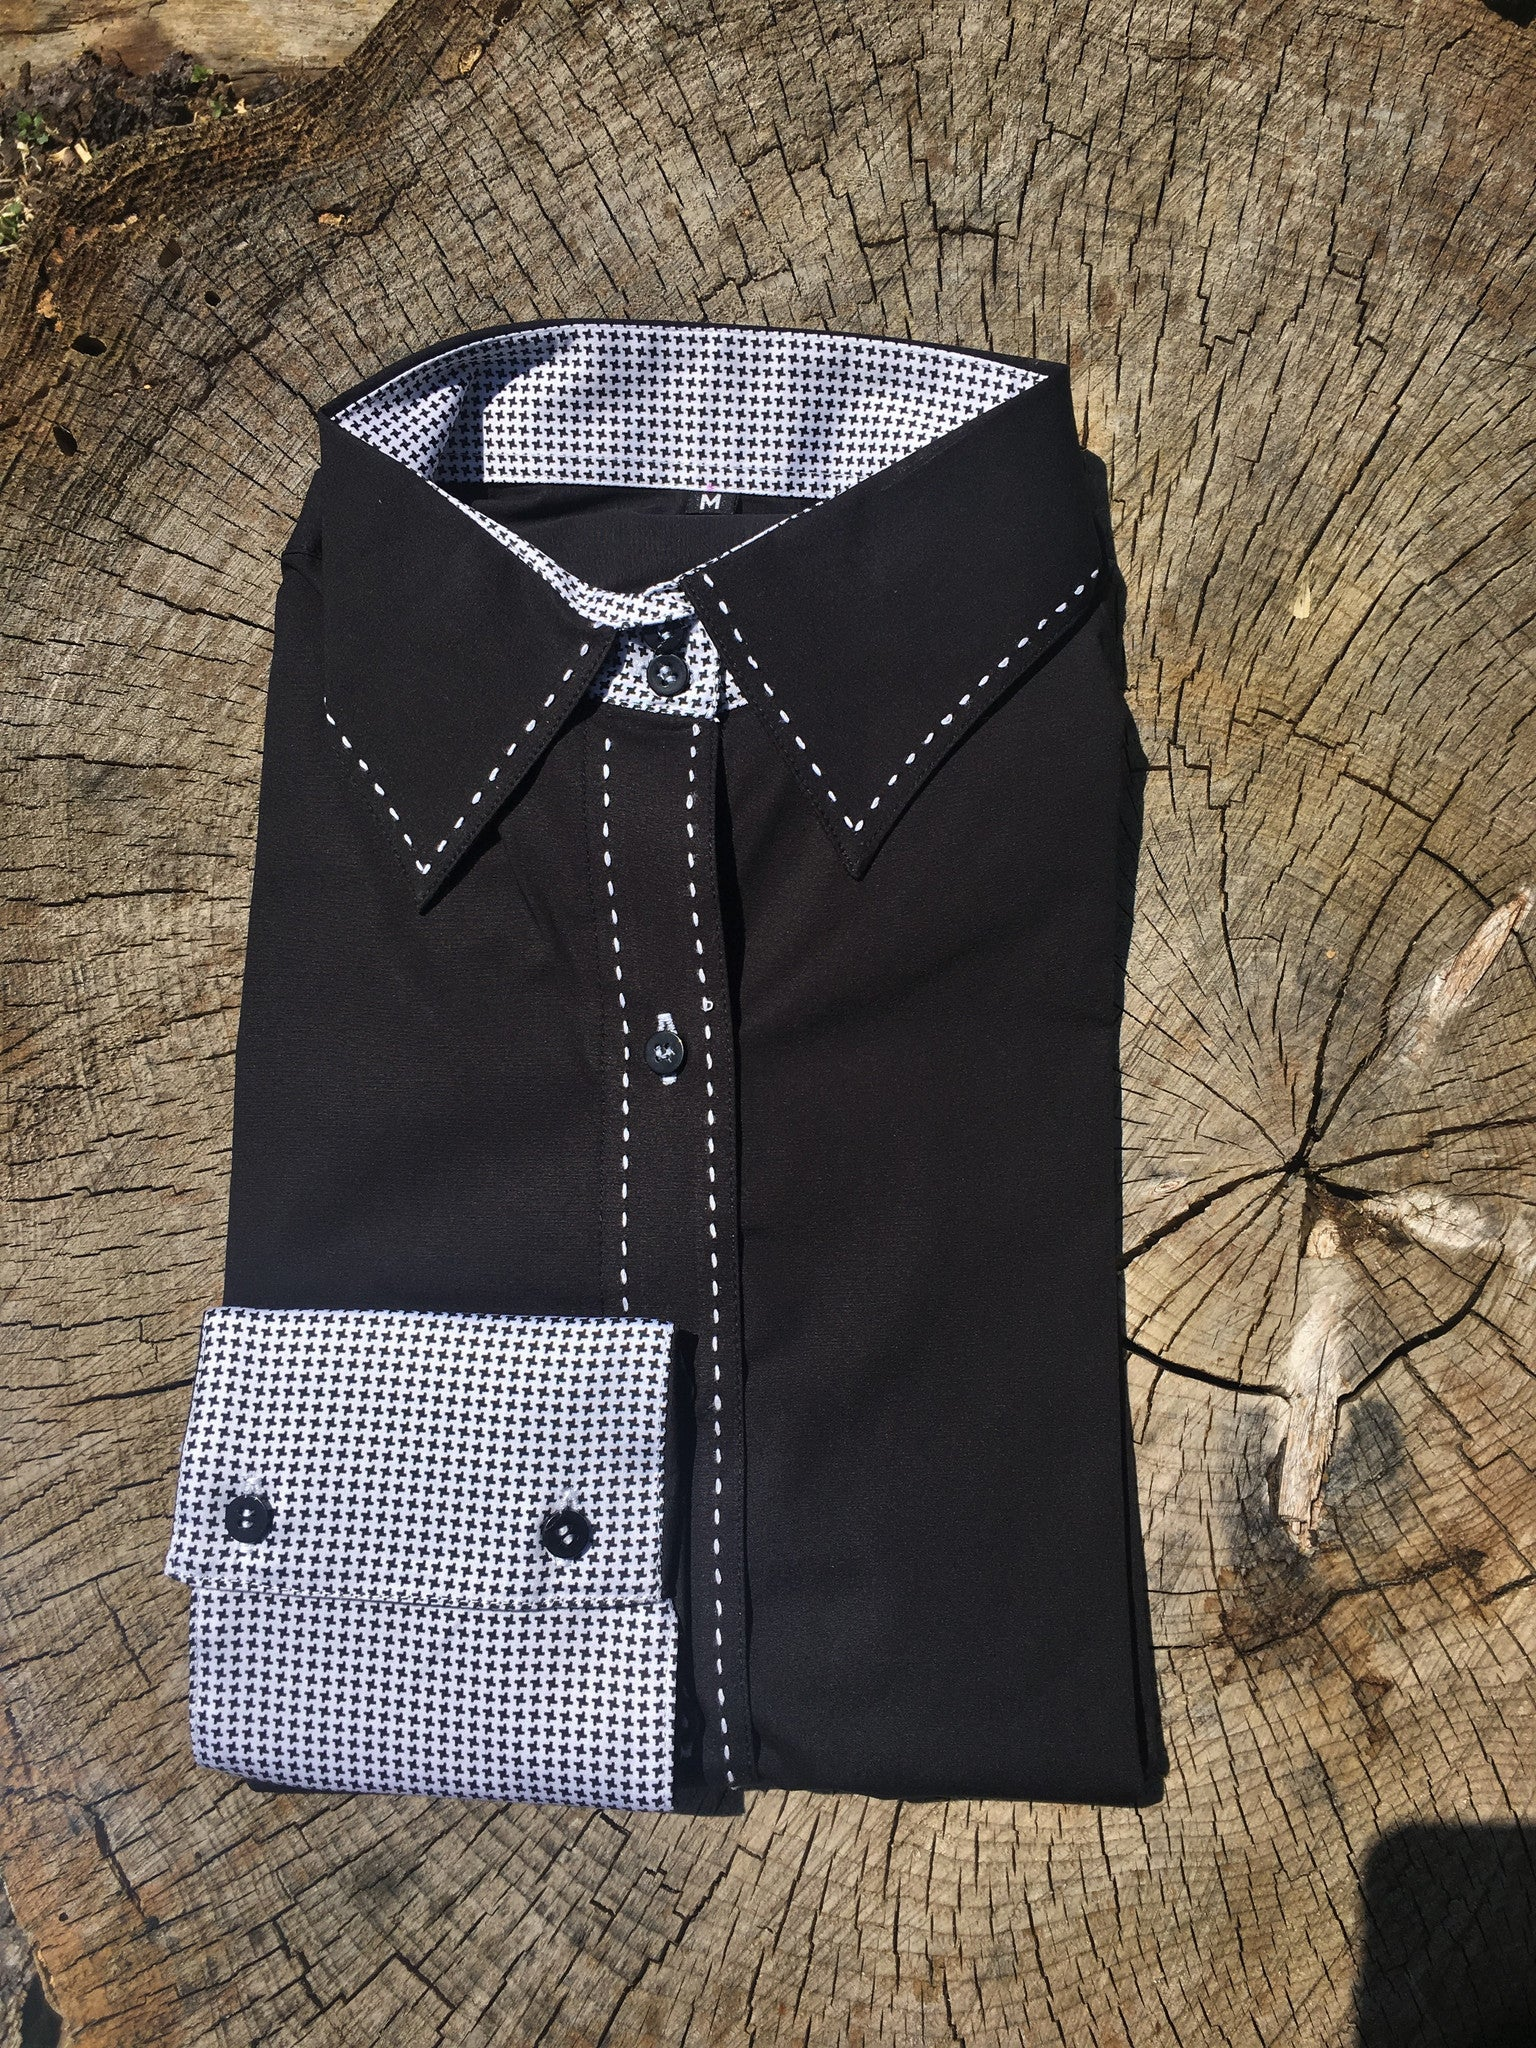 Buck-stitch Ladies Button Up Shirt - Black/White